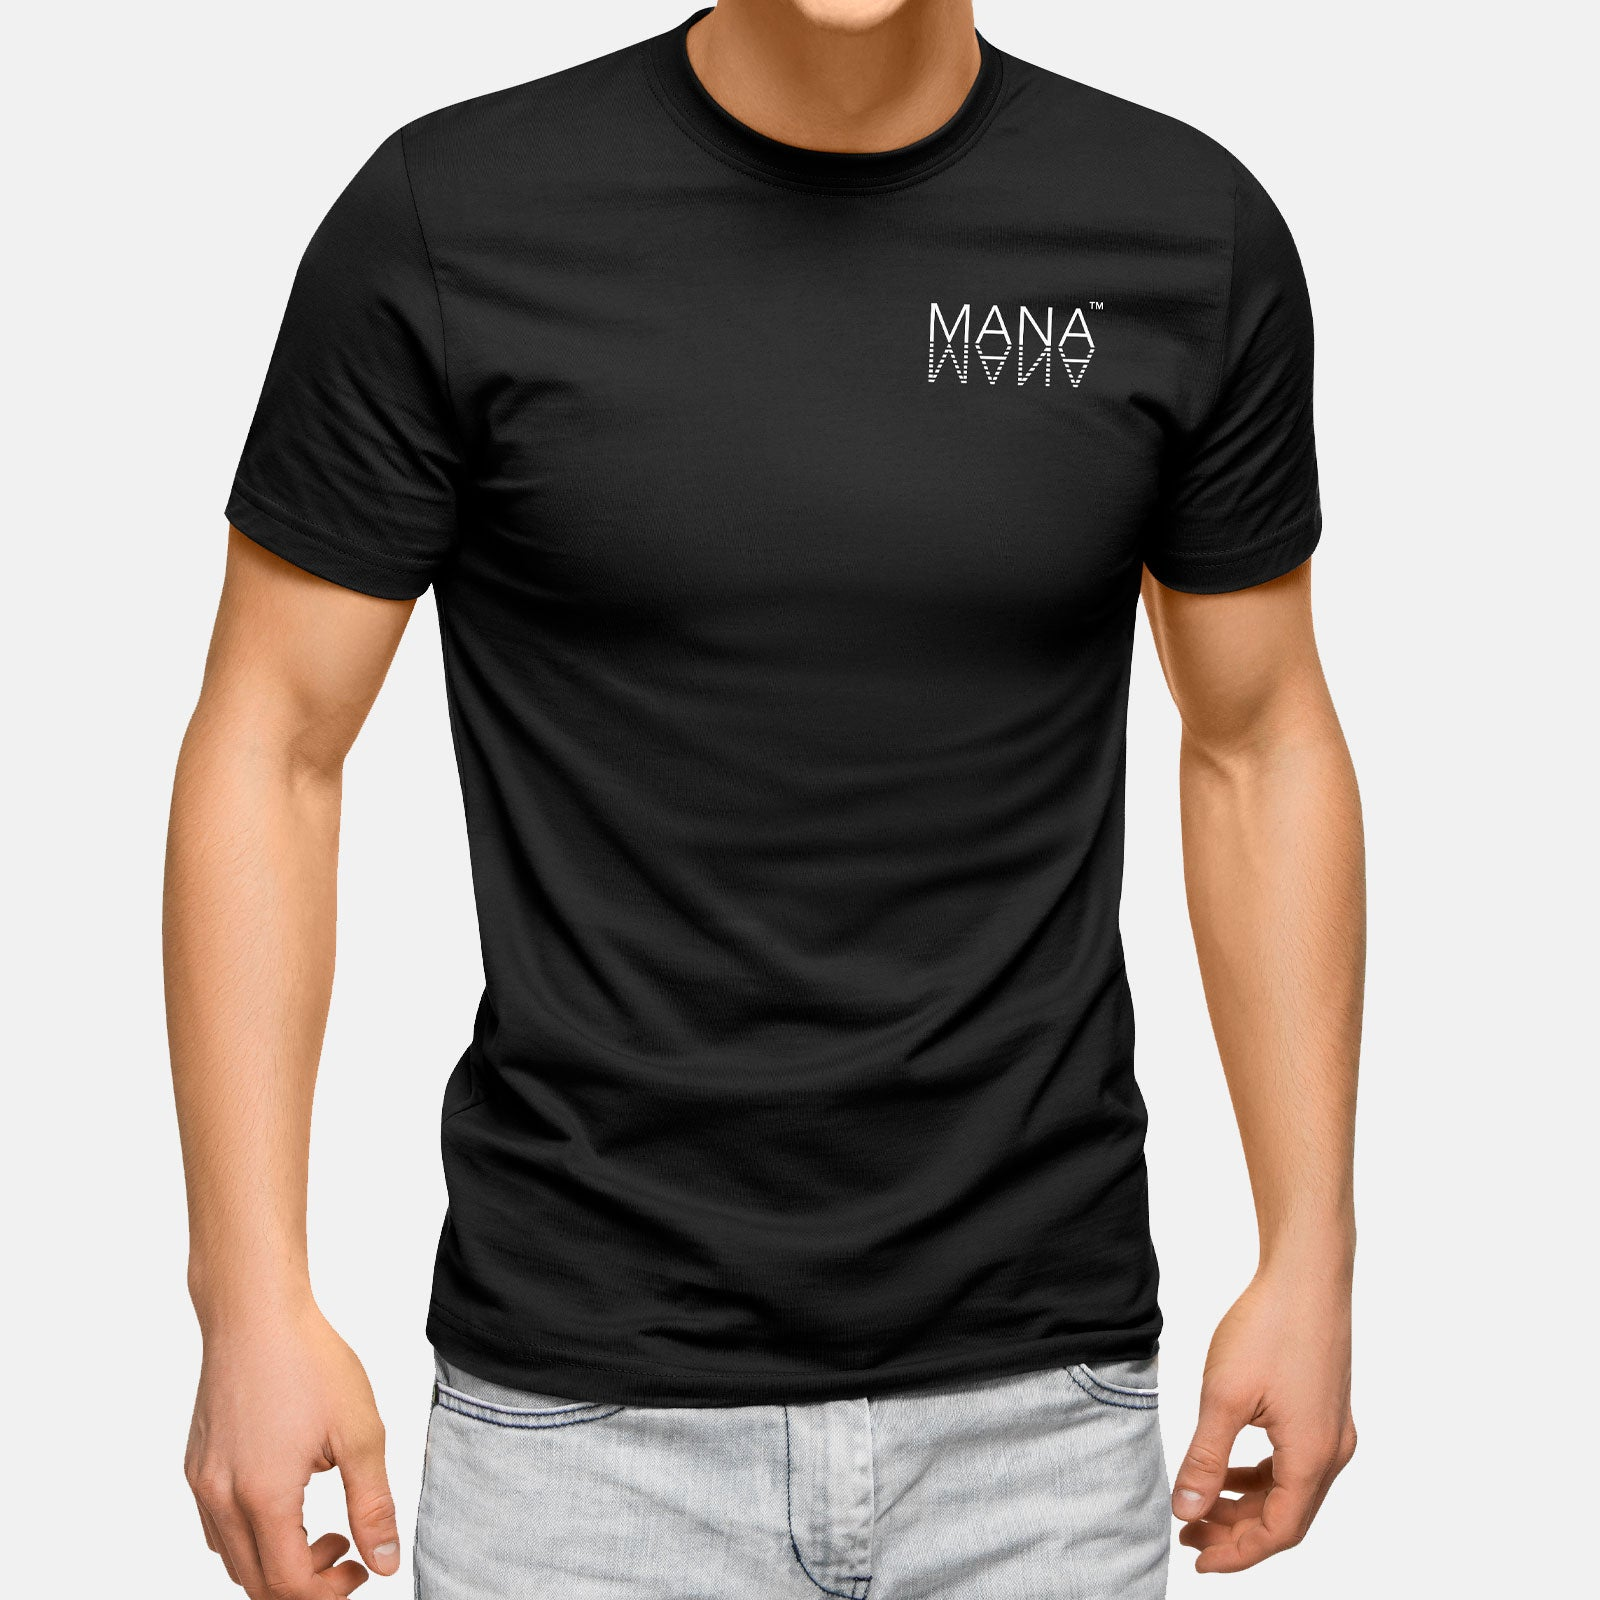 Mana™ Men's T-Shirt